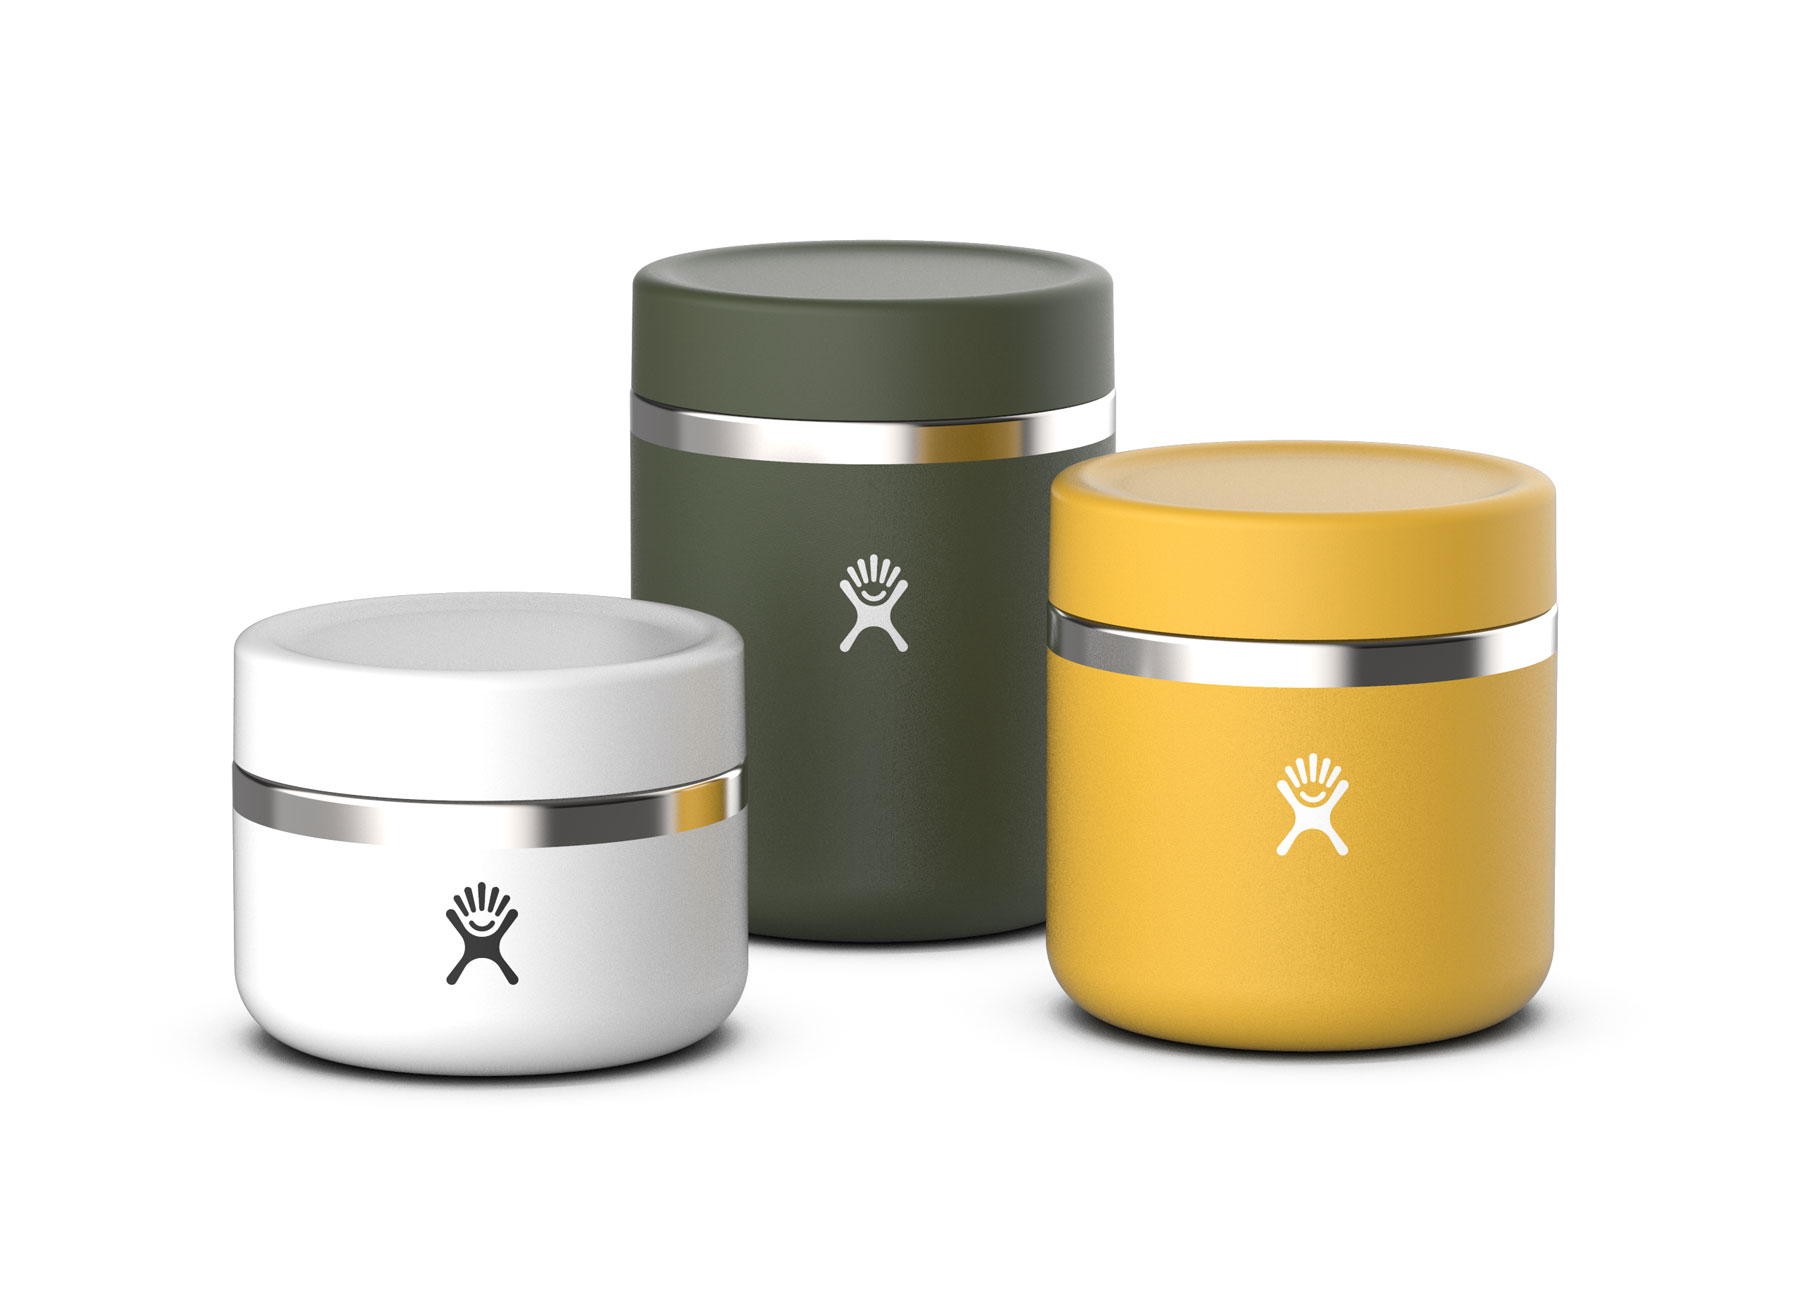 6 Clever Items (10/2/20) - Hydro Flask Food Jars set